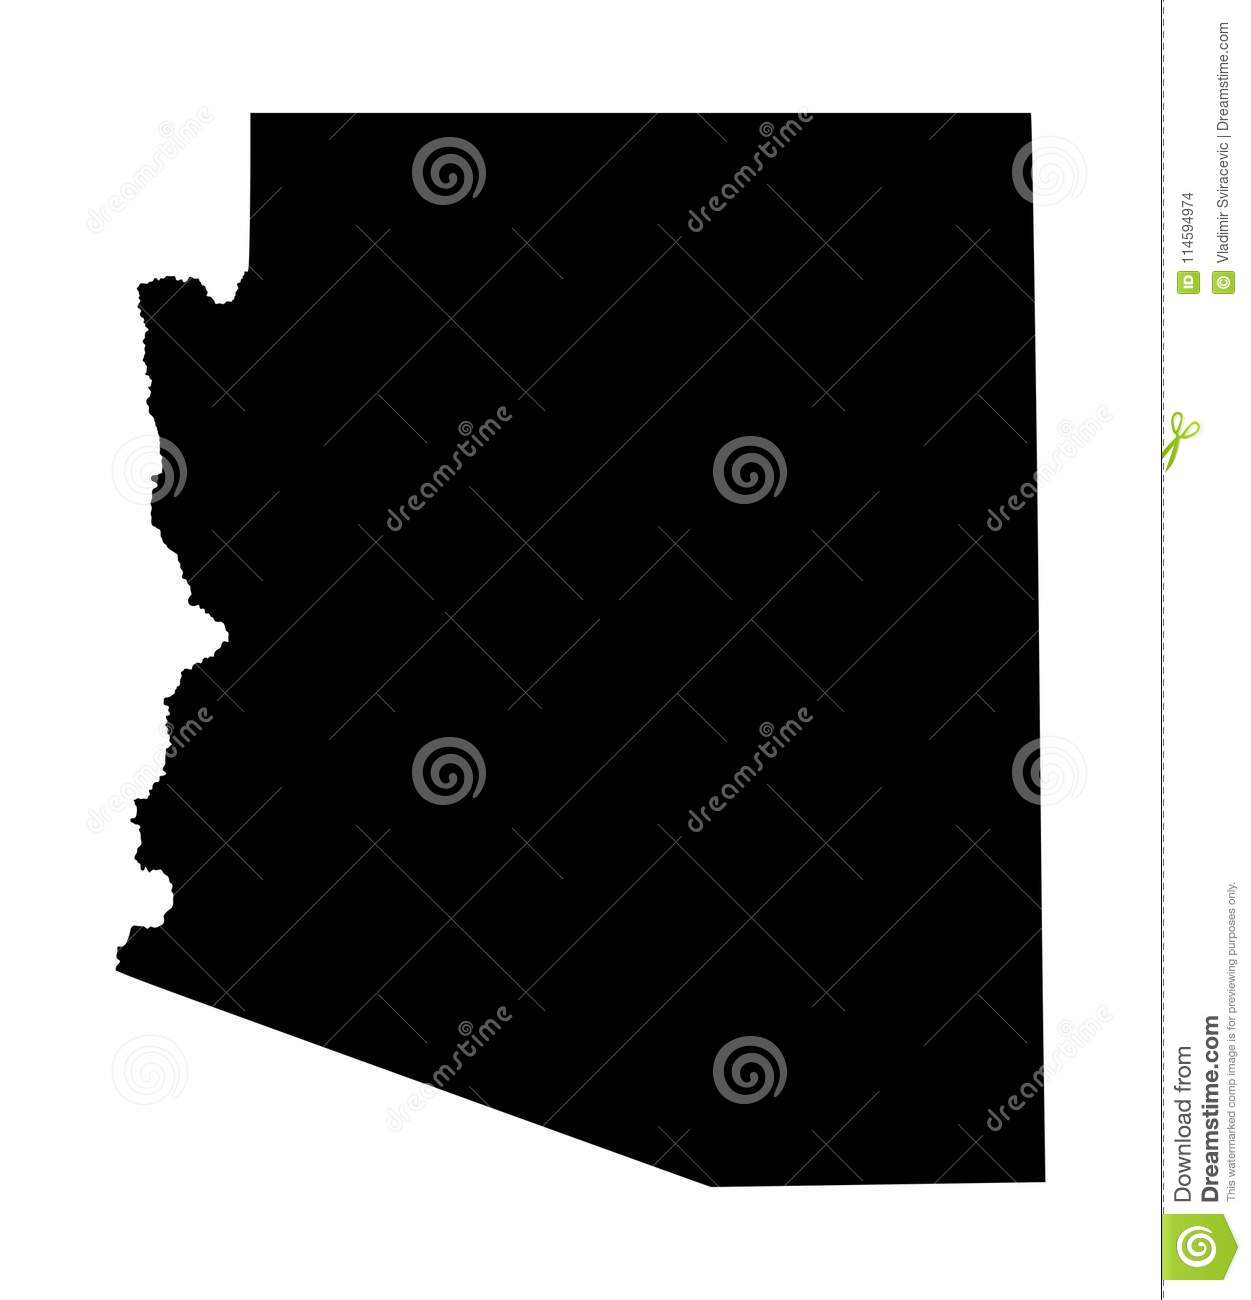 Arizona map silhouette. stock illustration. Illustration of